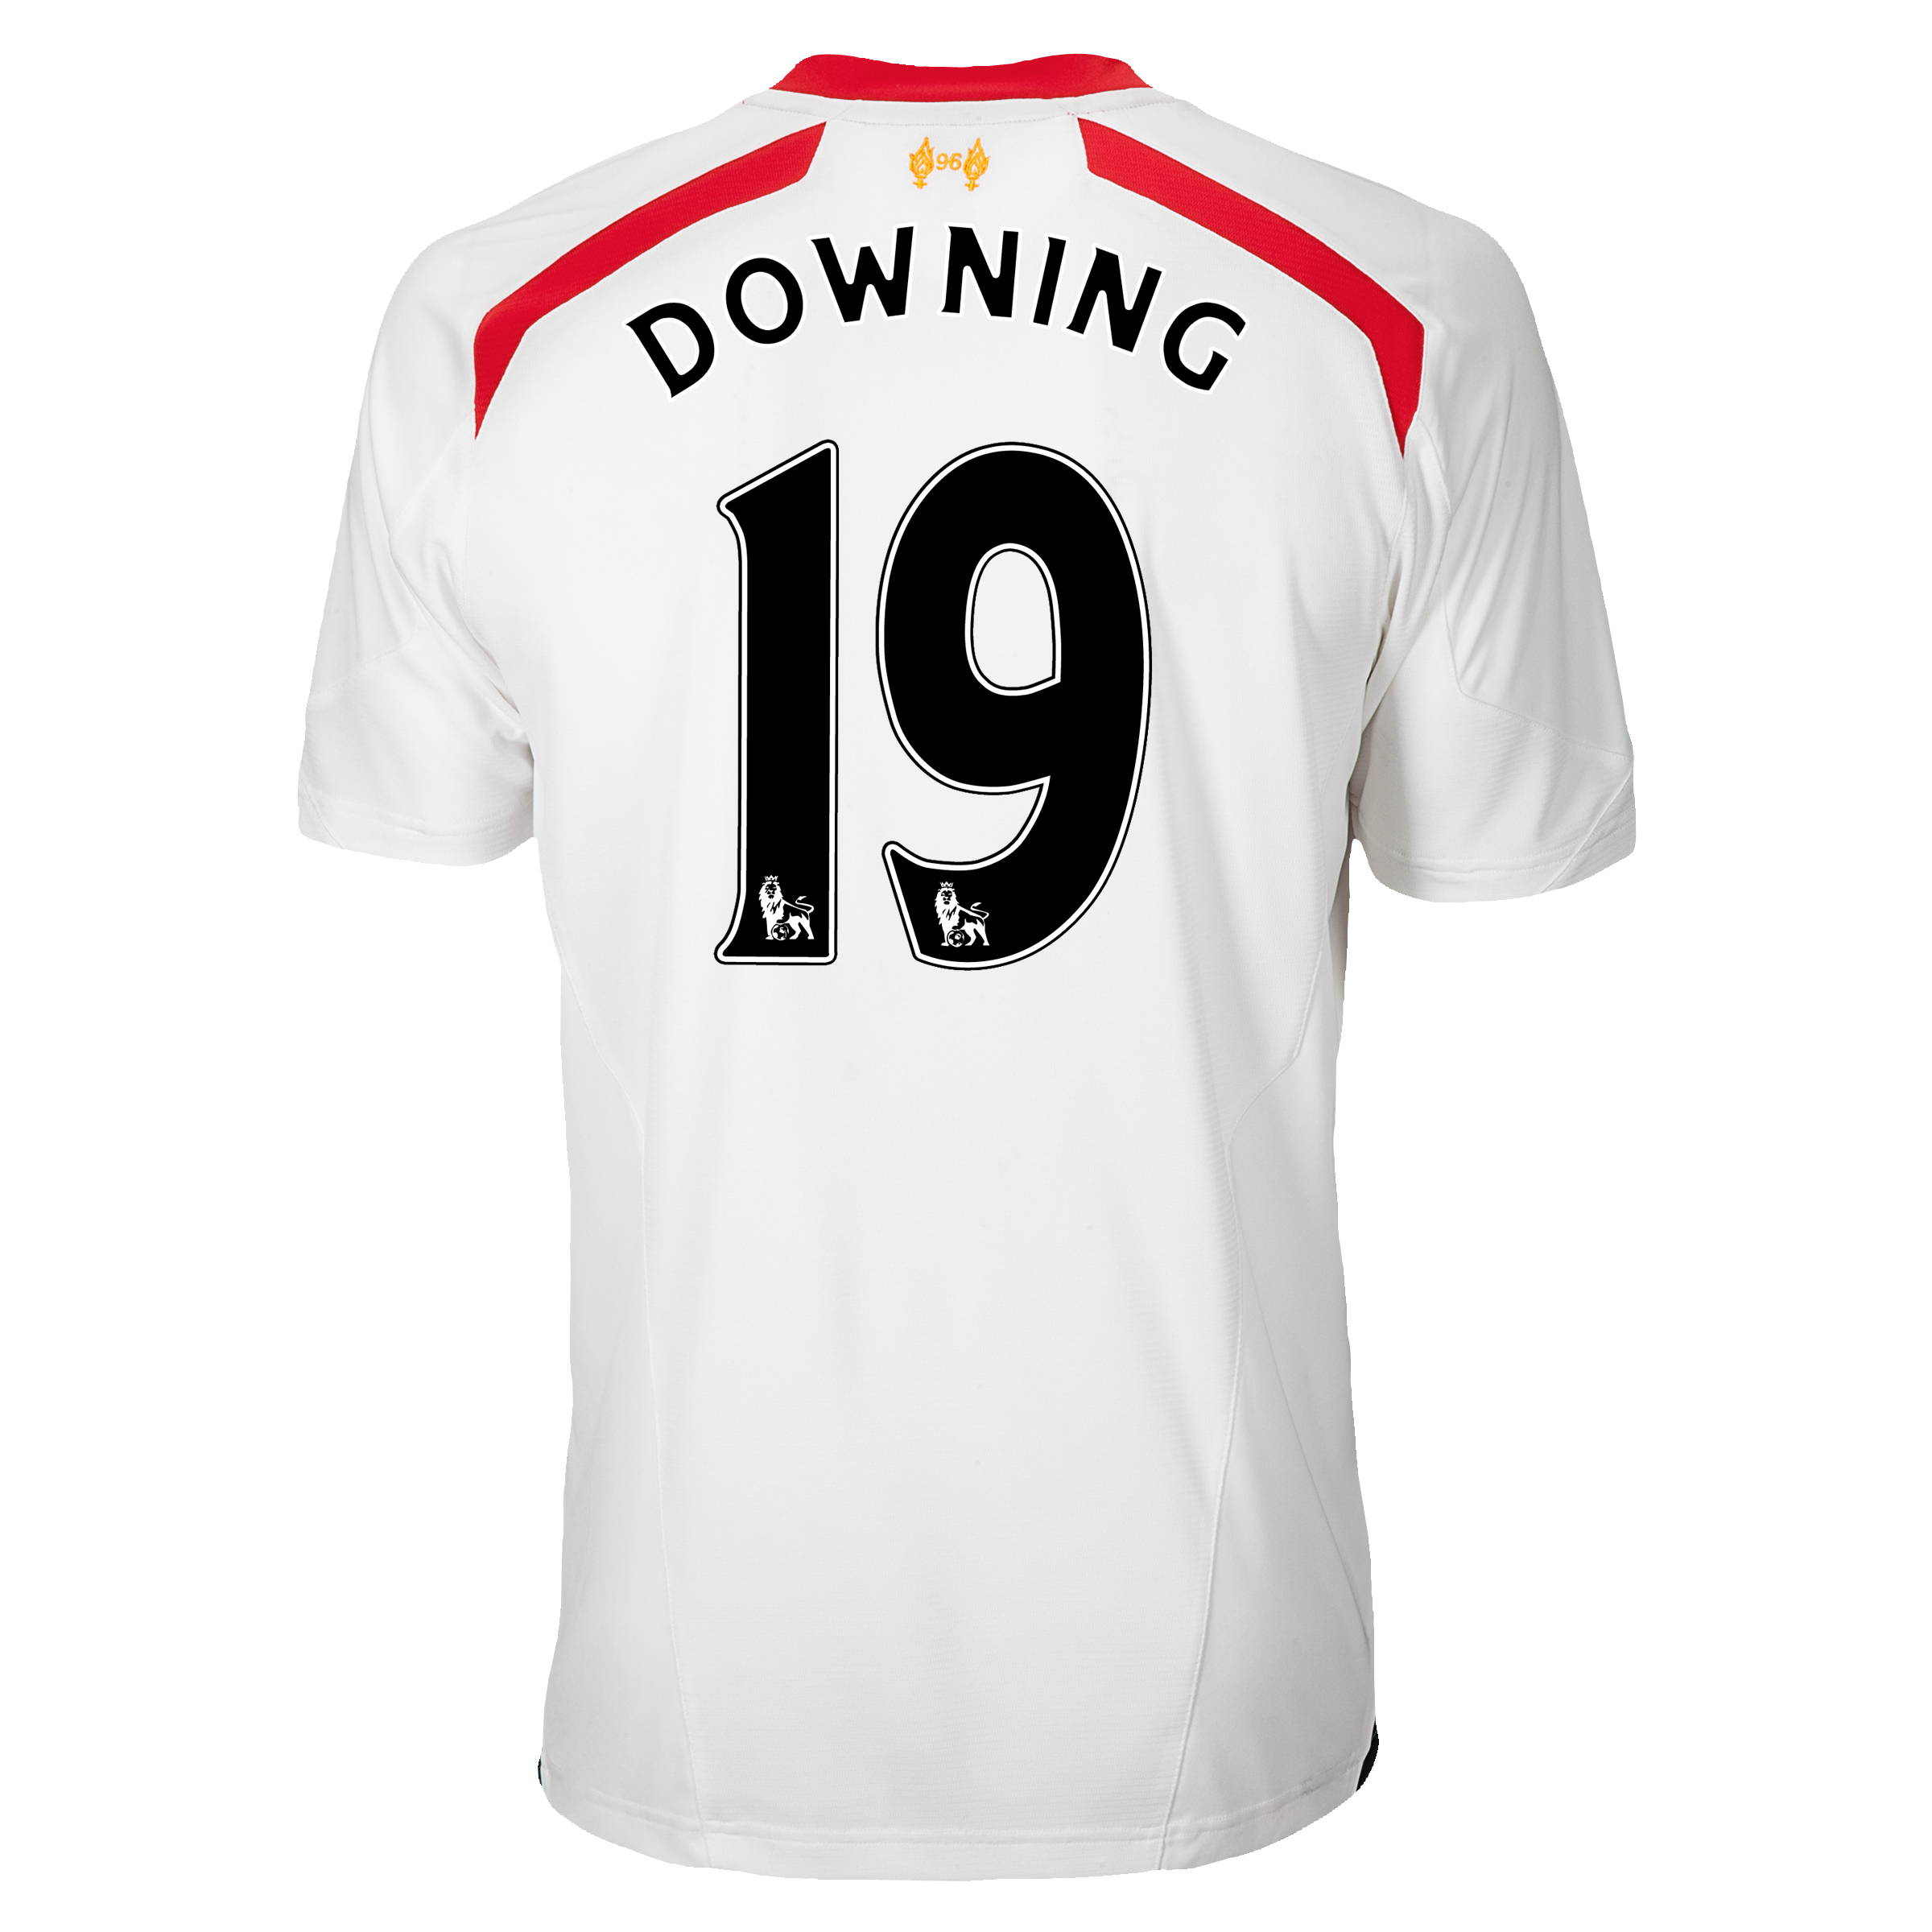 Liverpool Away Shirt 2013/14 - kids with Downing 19 printing